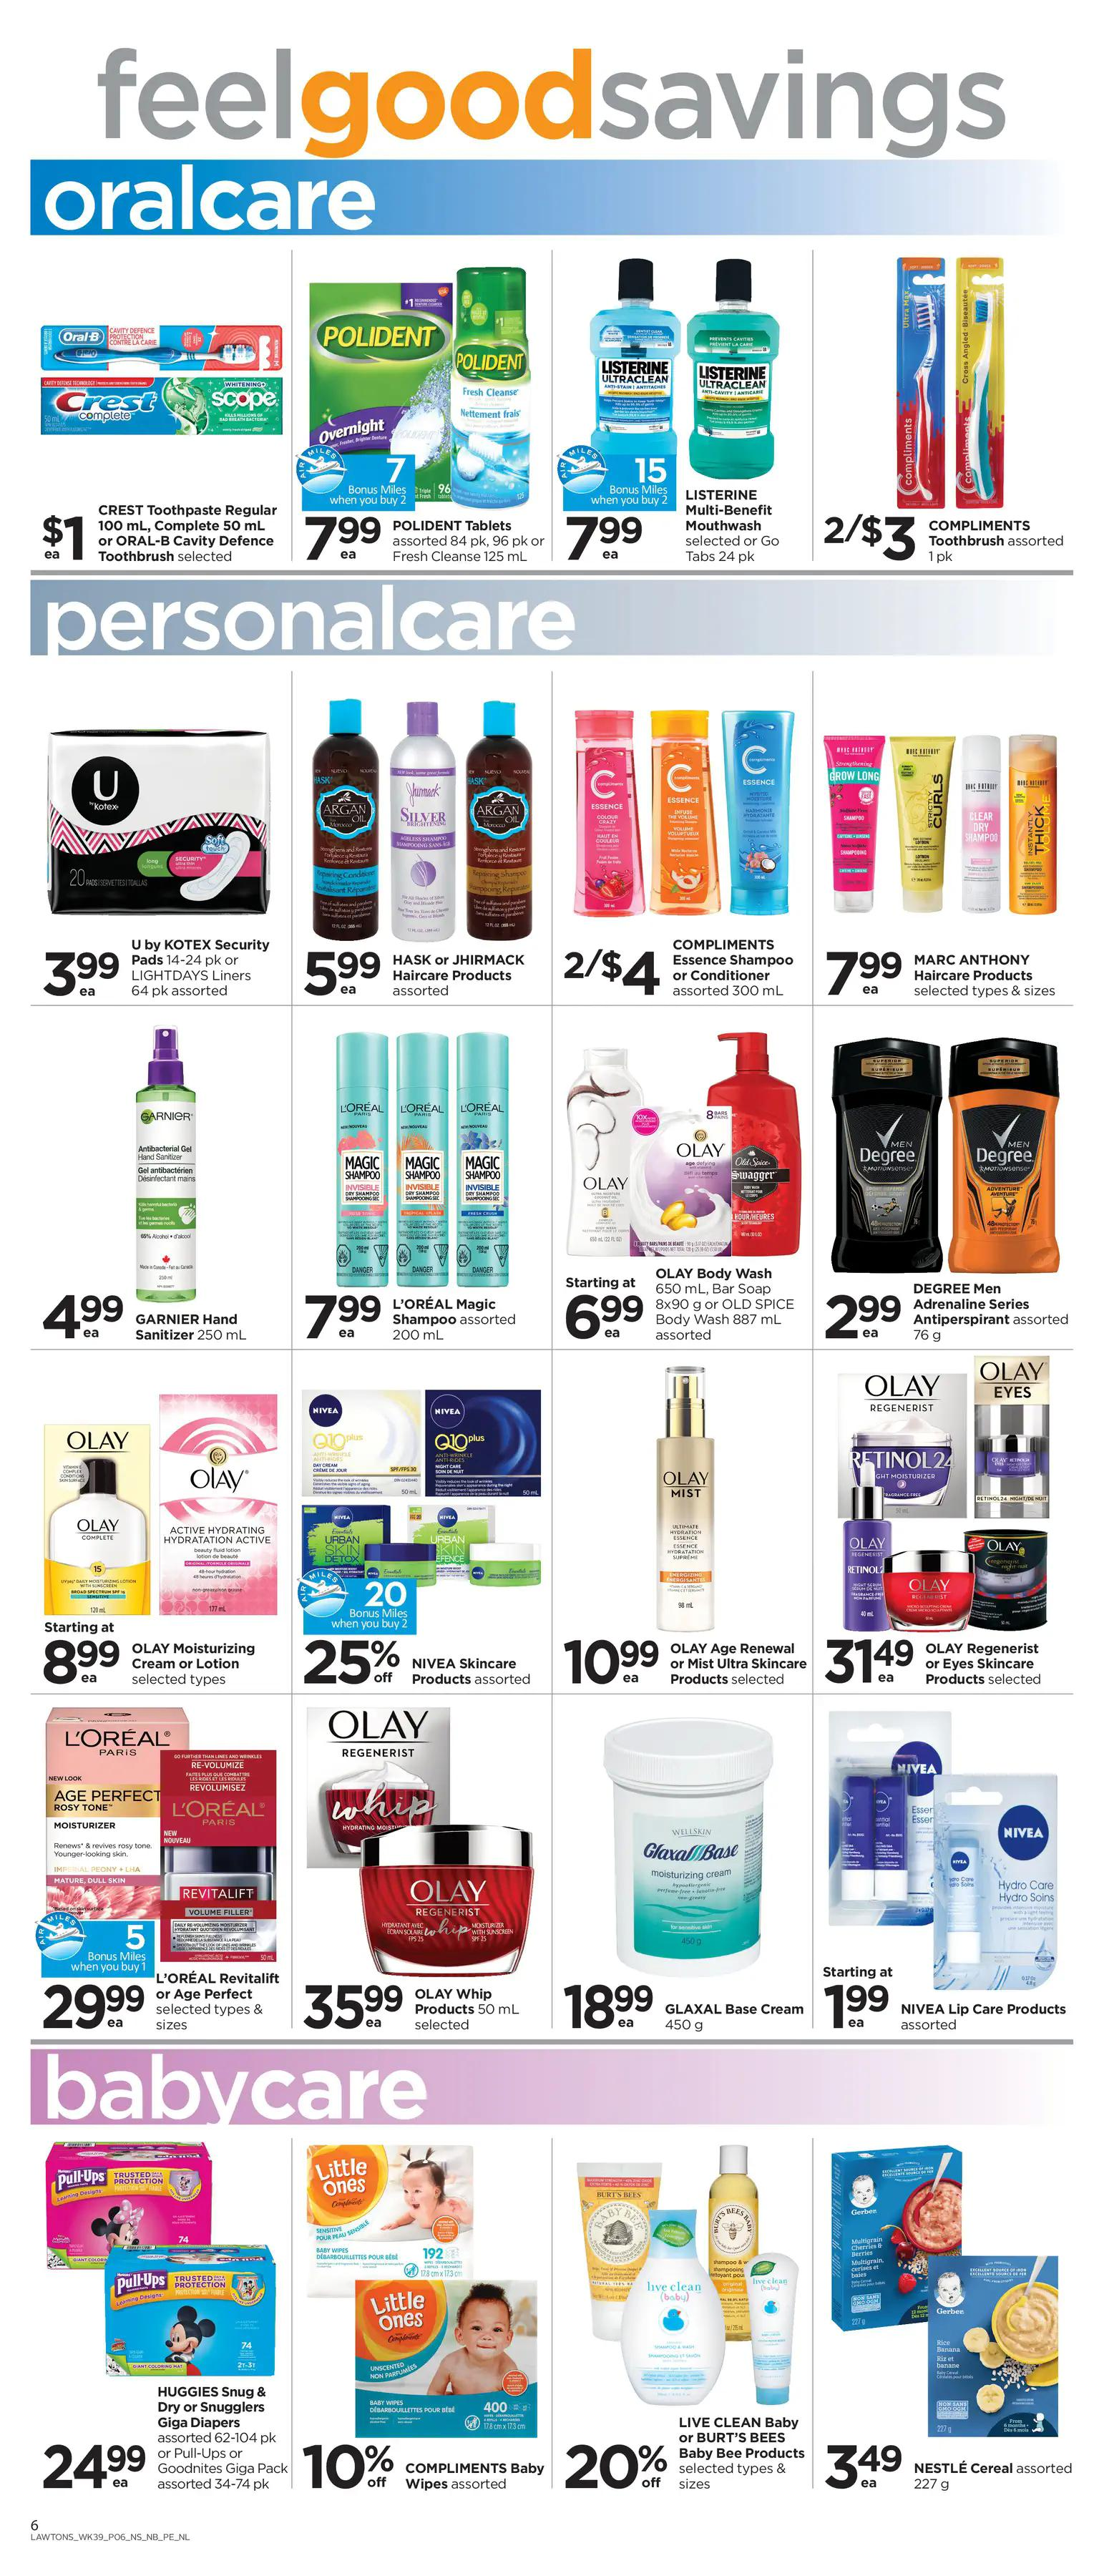 Lawtons Drugs - Weekly Flyer Specials - Page 5